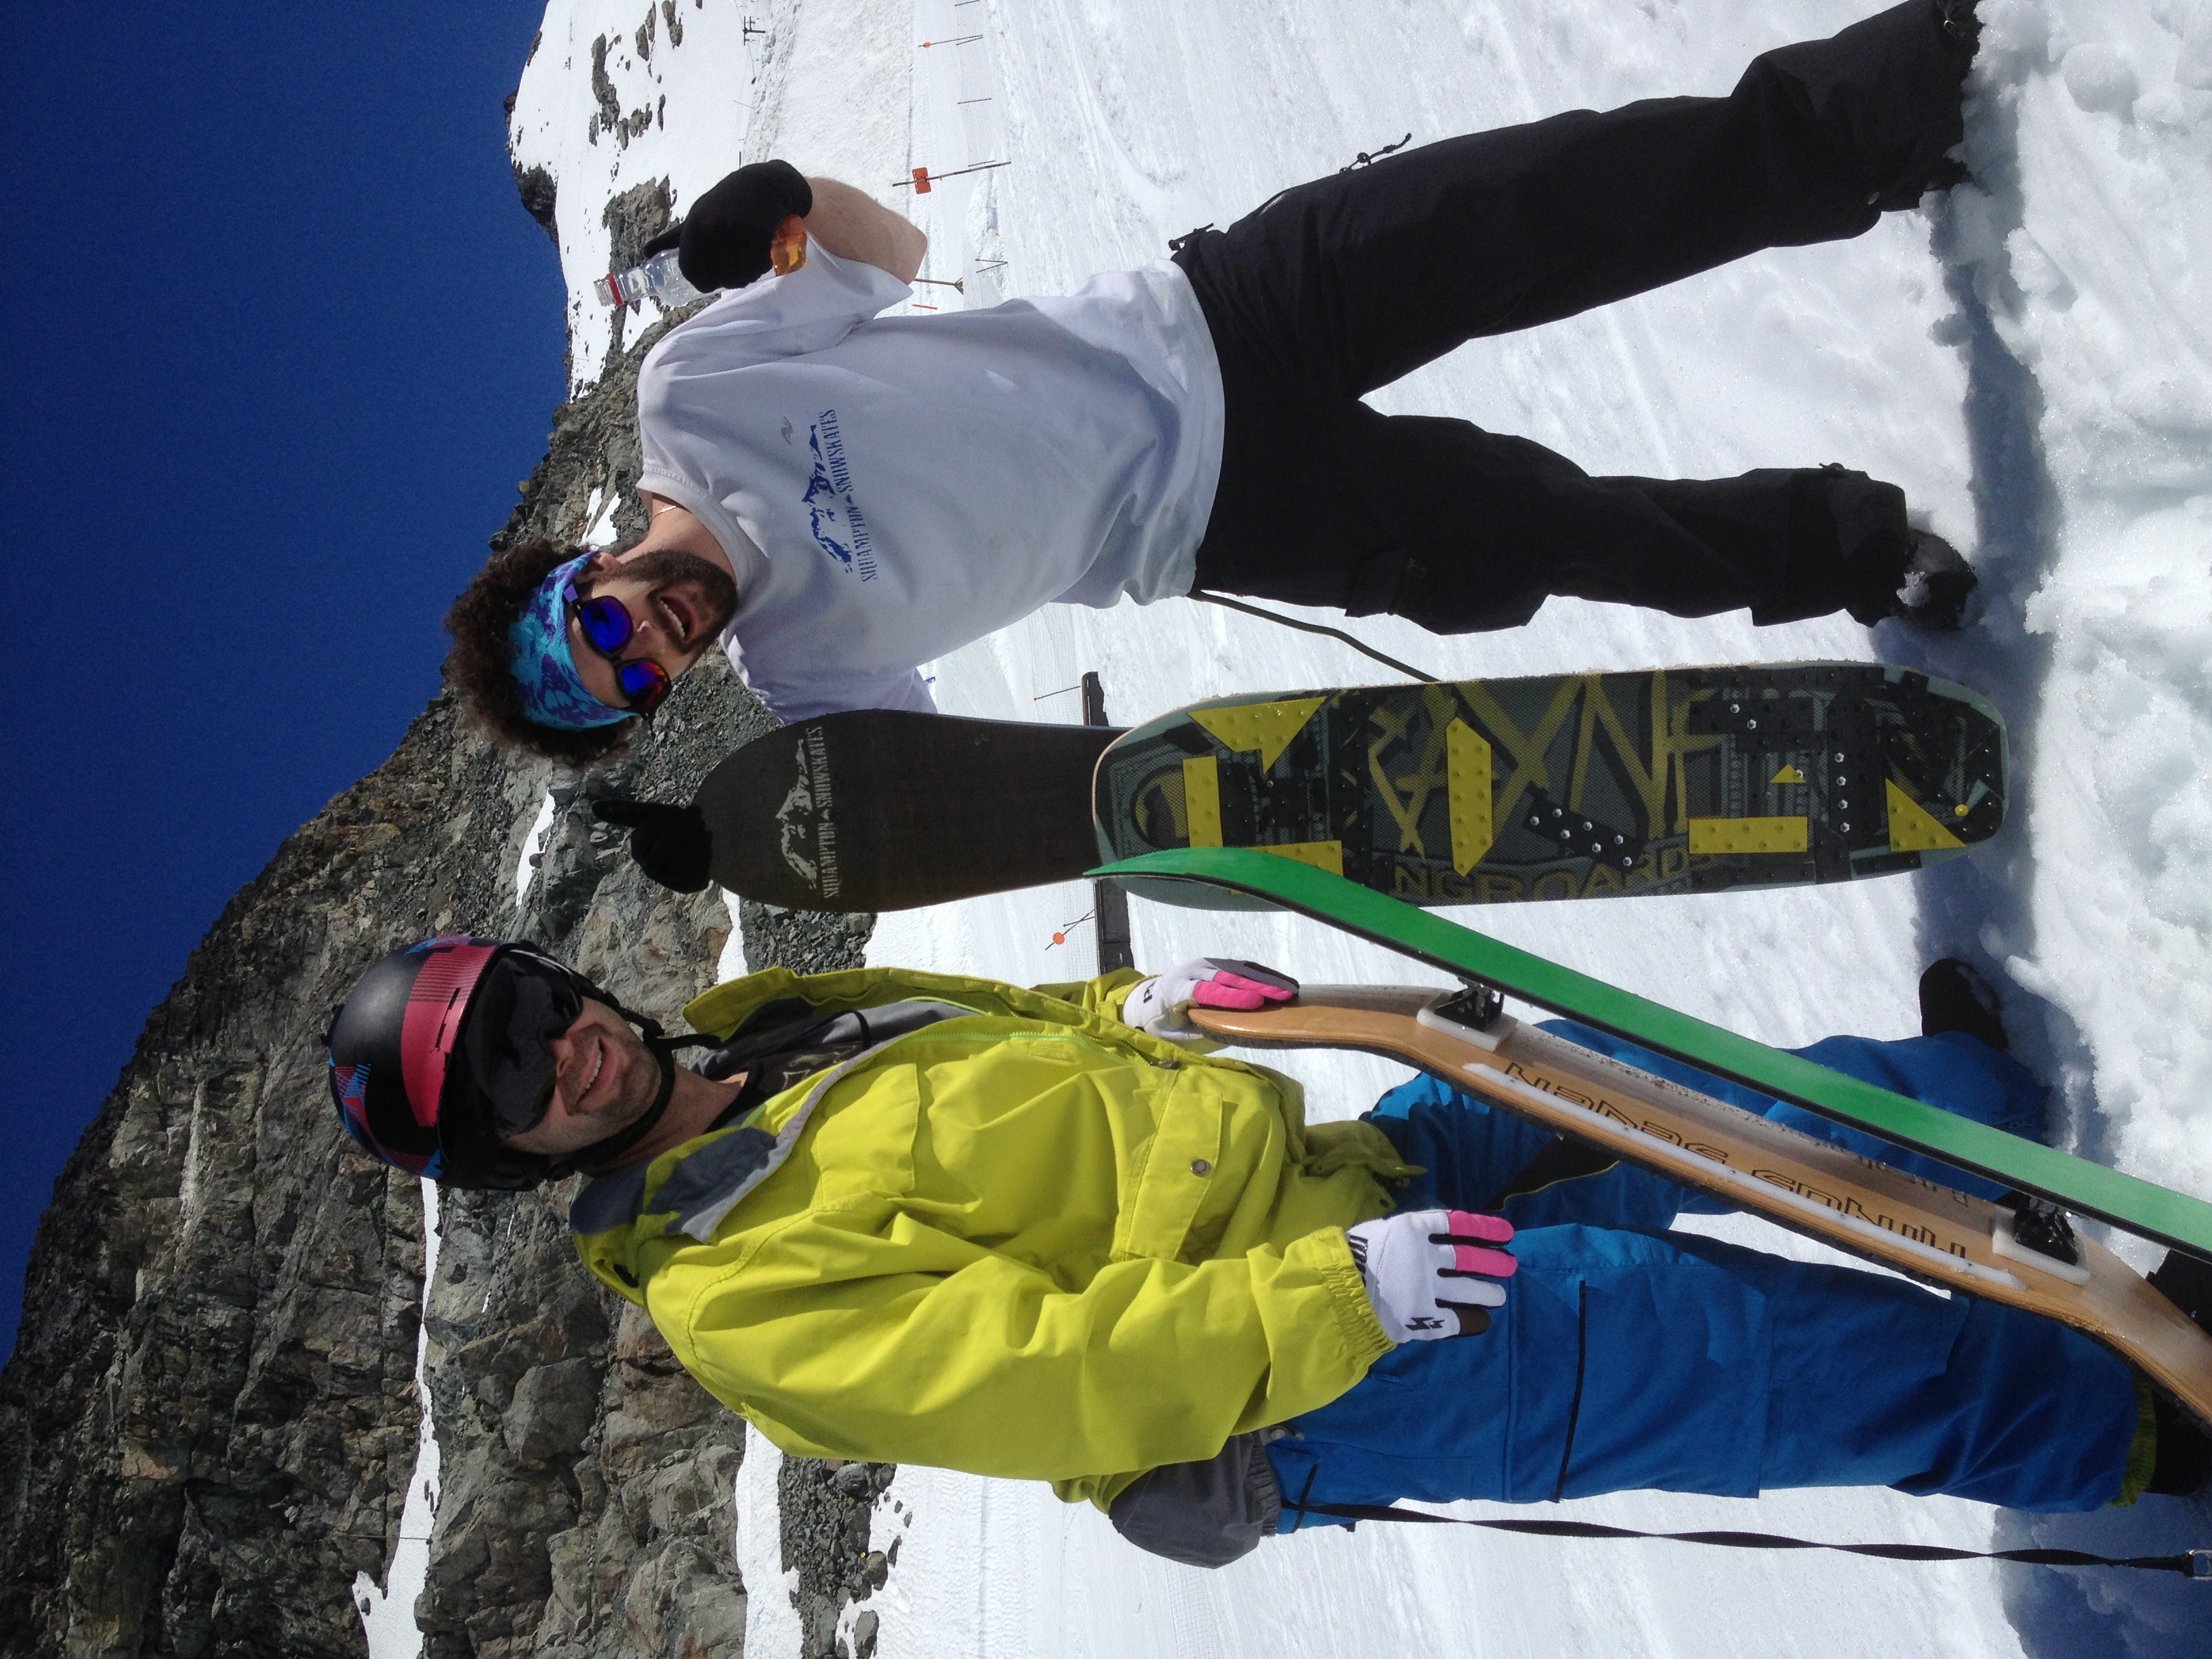 Getting warmed up on the Blackcomb Glacier. (nice gloves Nick!)